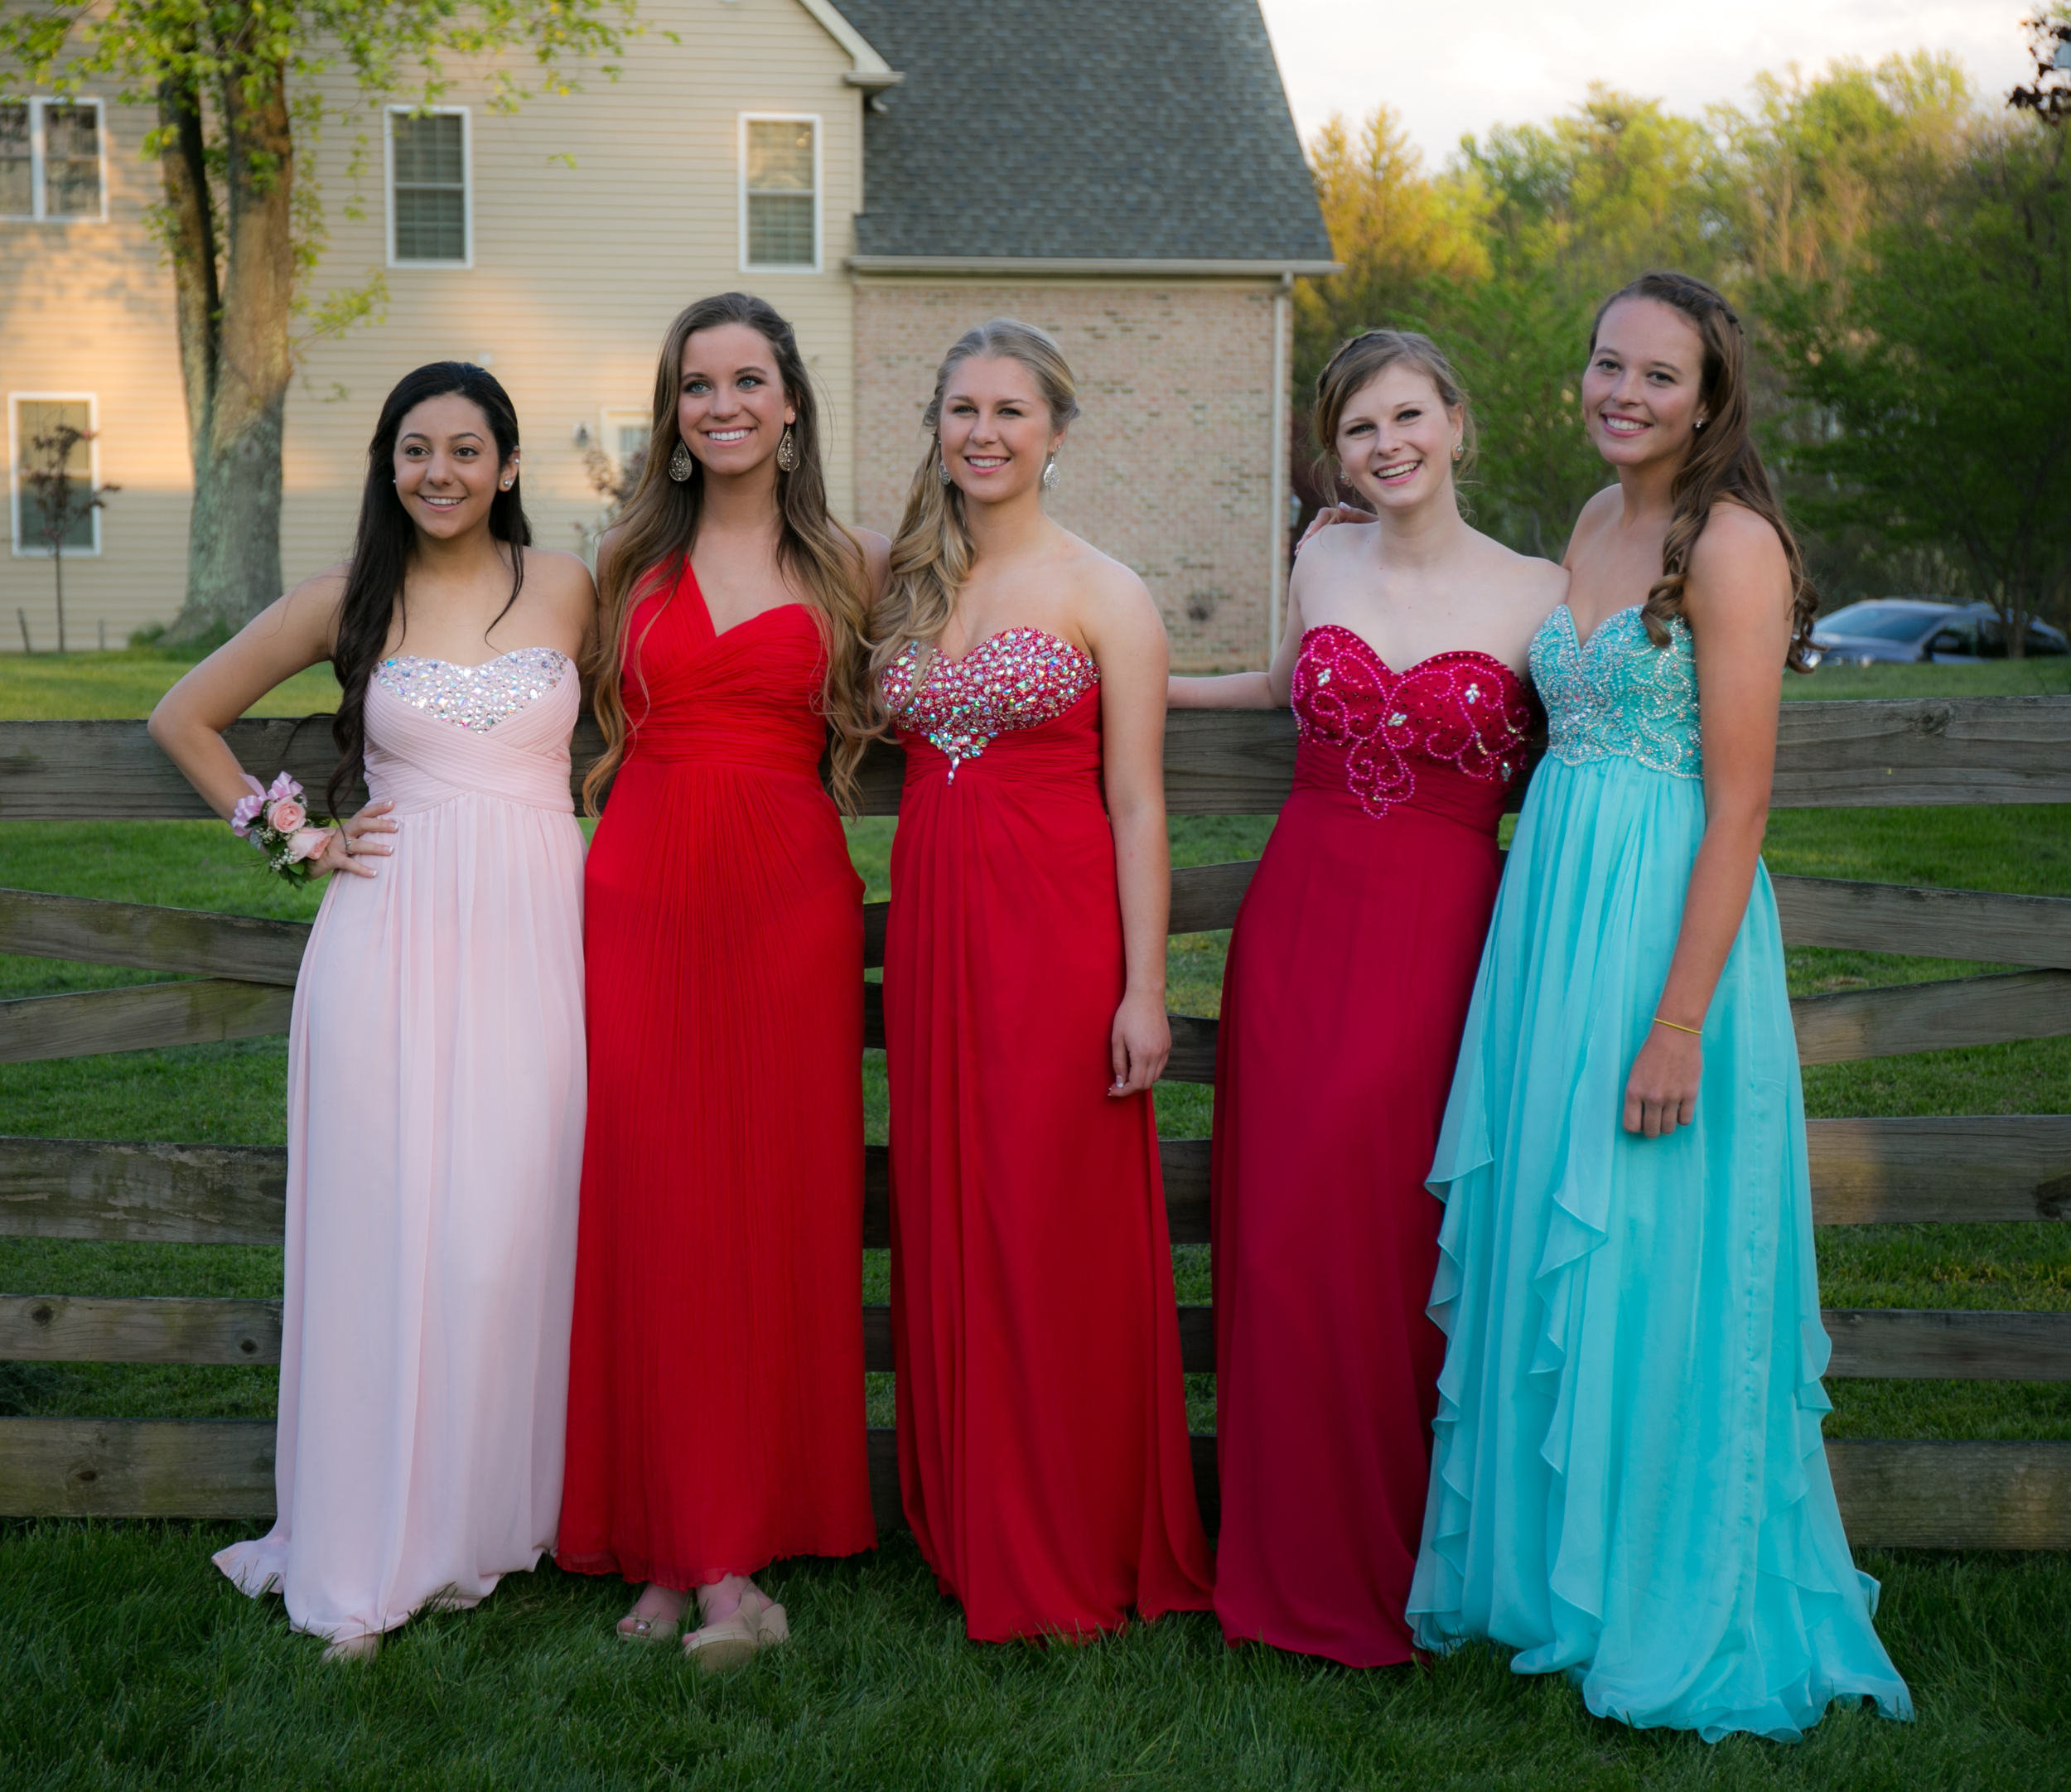 Mount-De-Sales-Pre-Prom-May-2014-128.jpg